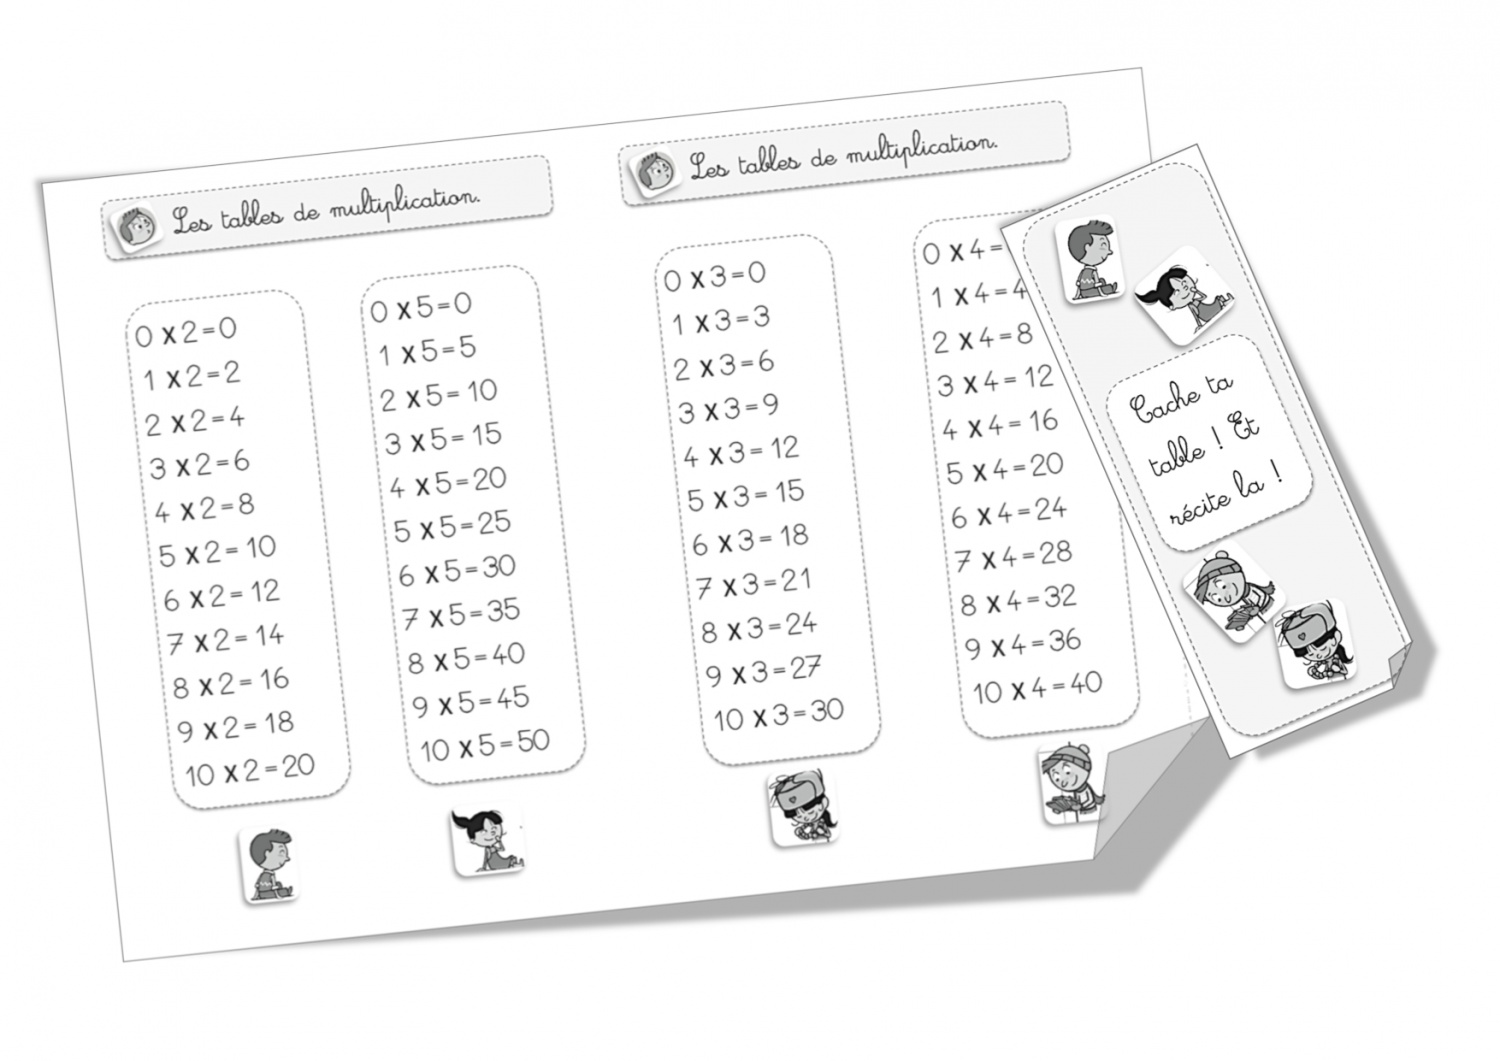 Exercice table de multiplication 2 3 4 5 les tables de for Table de multiplication 7 et 8